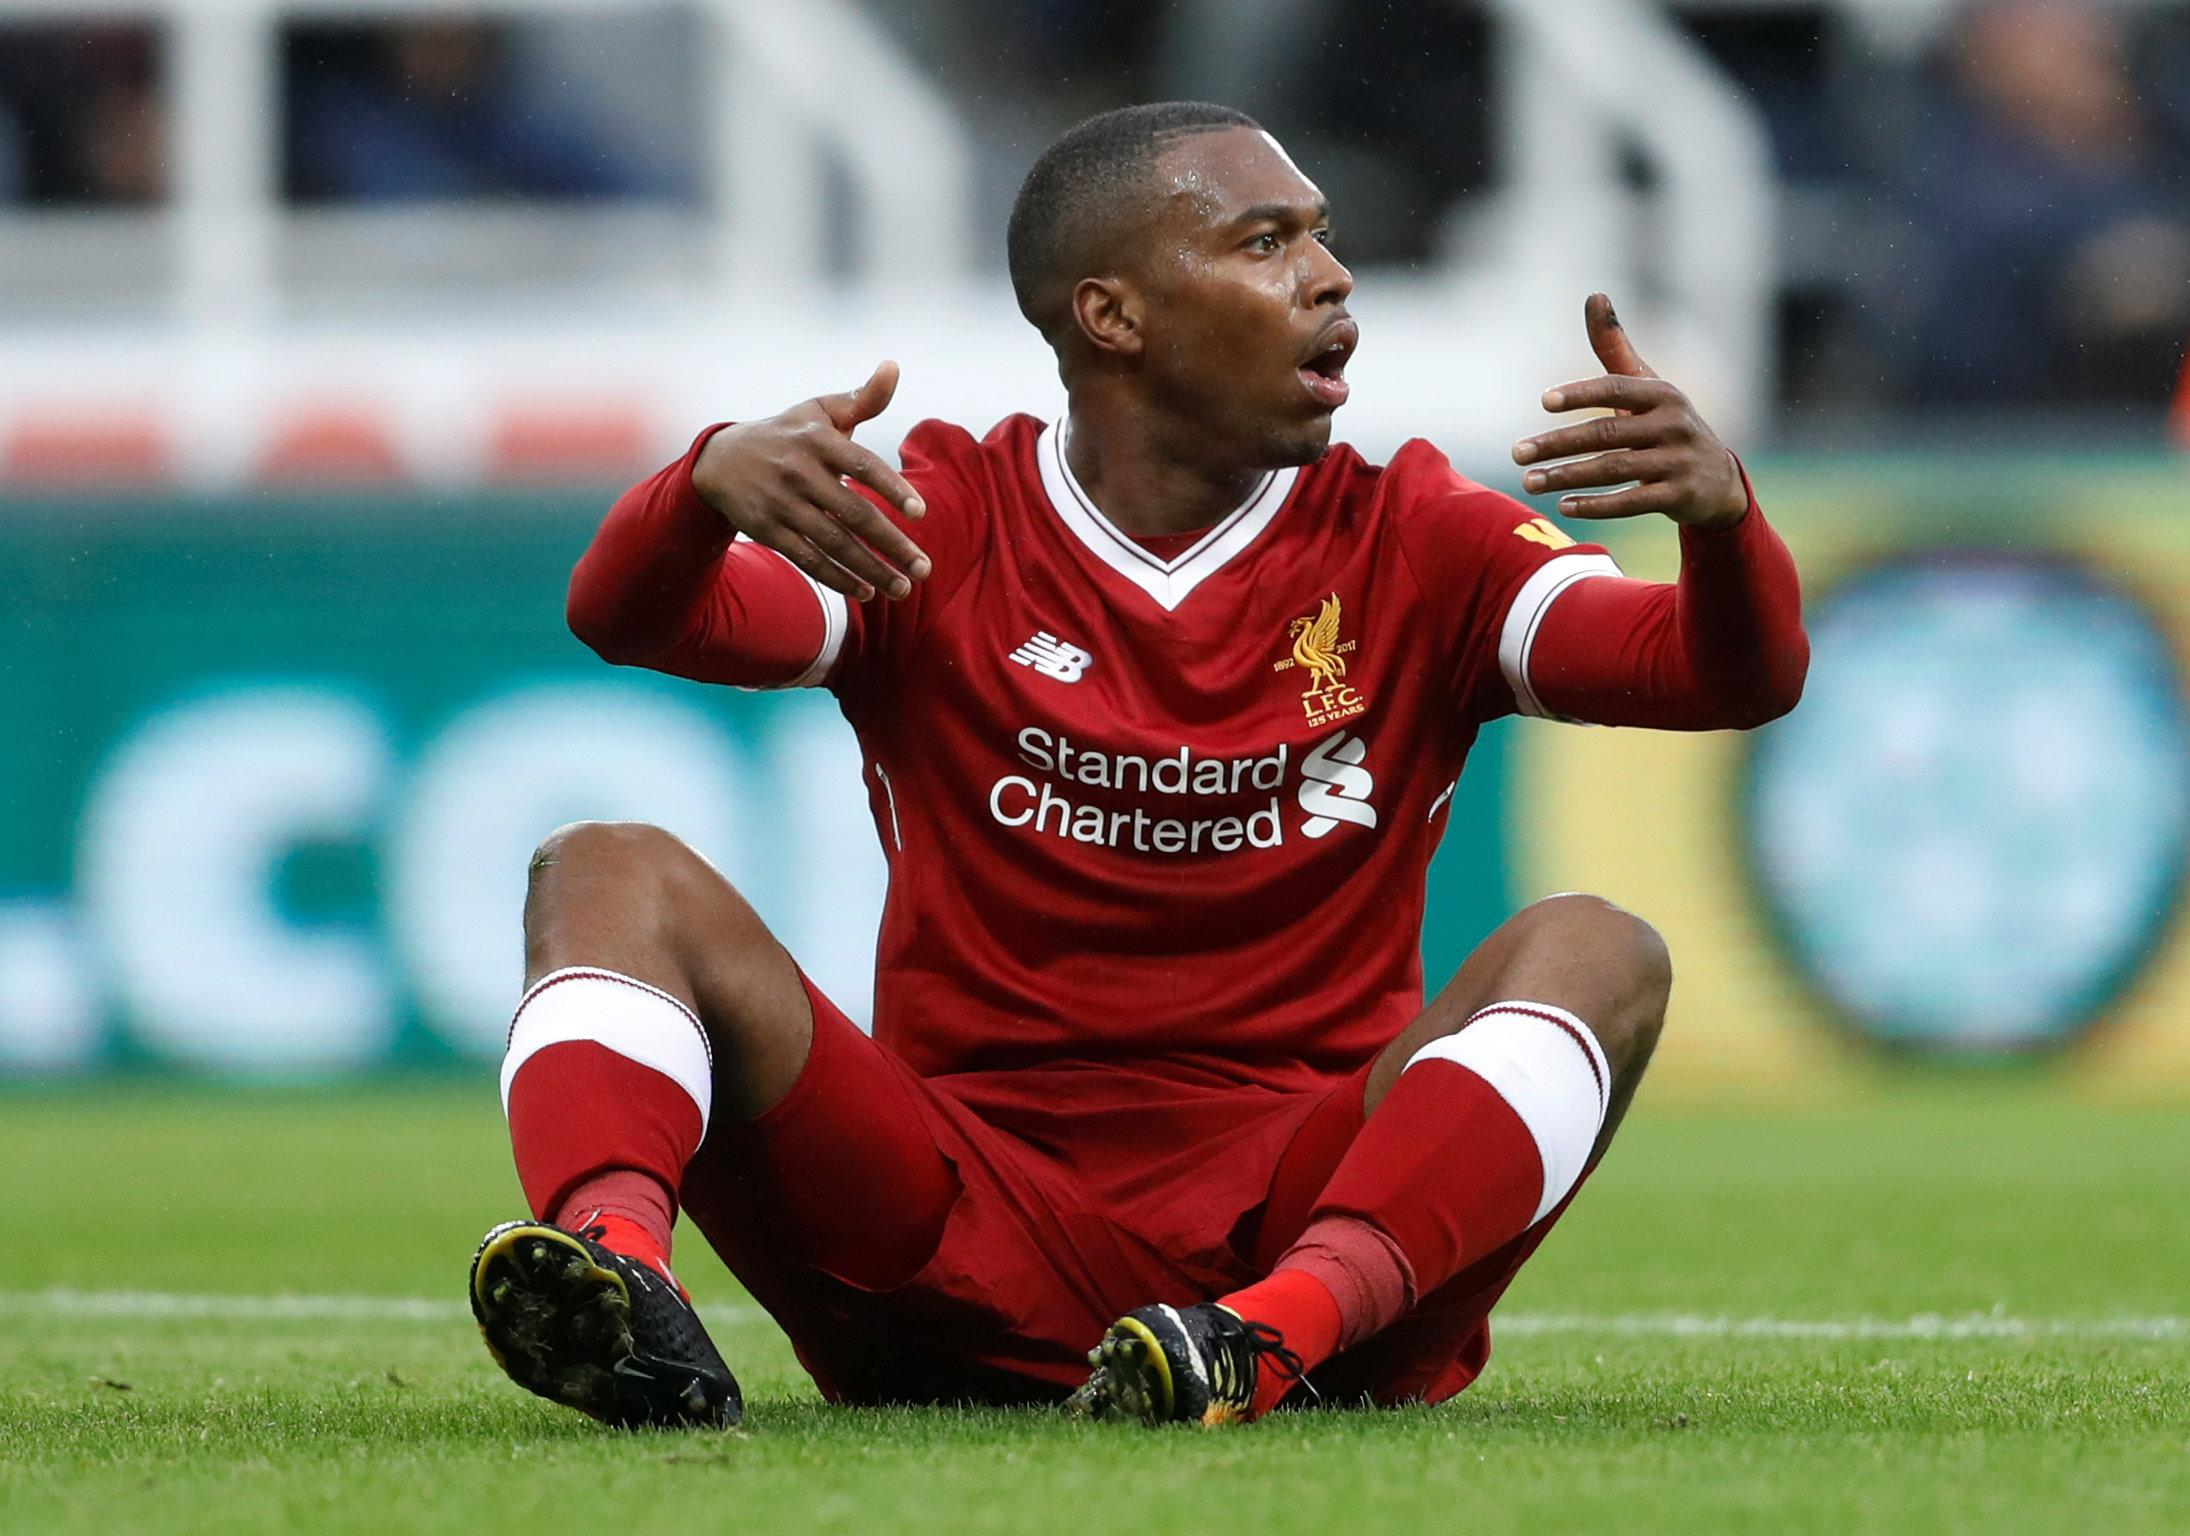 Sturridge is a shadow of the player he was during the 2013/14 season